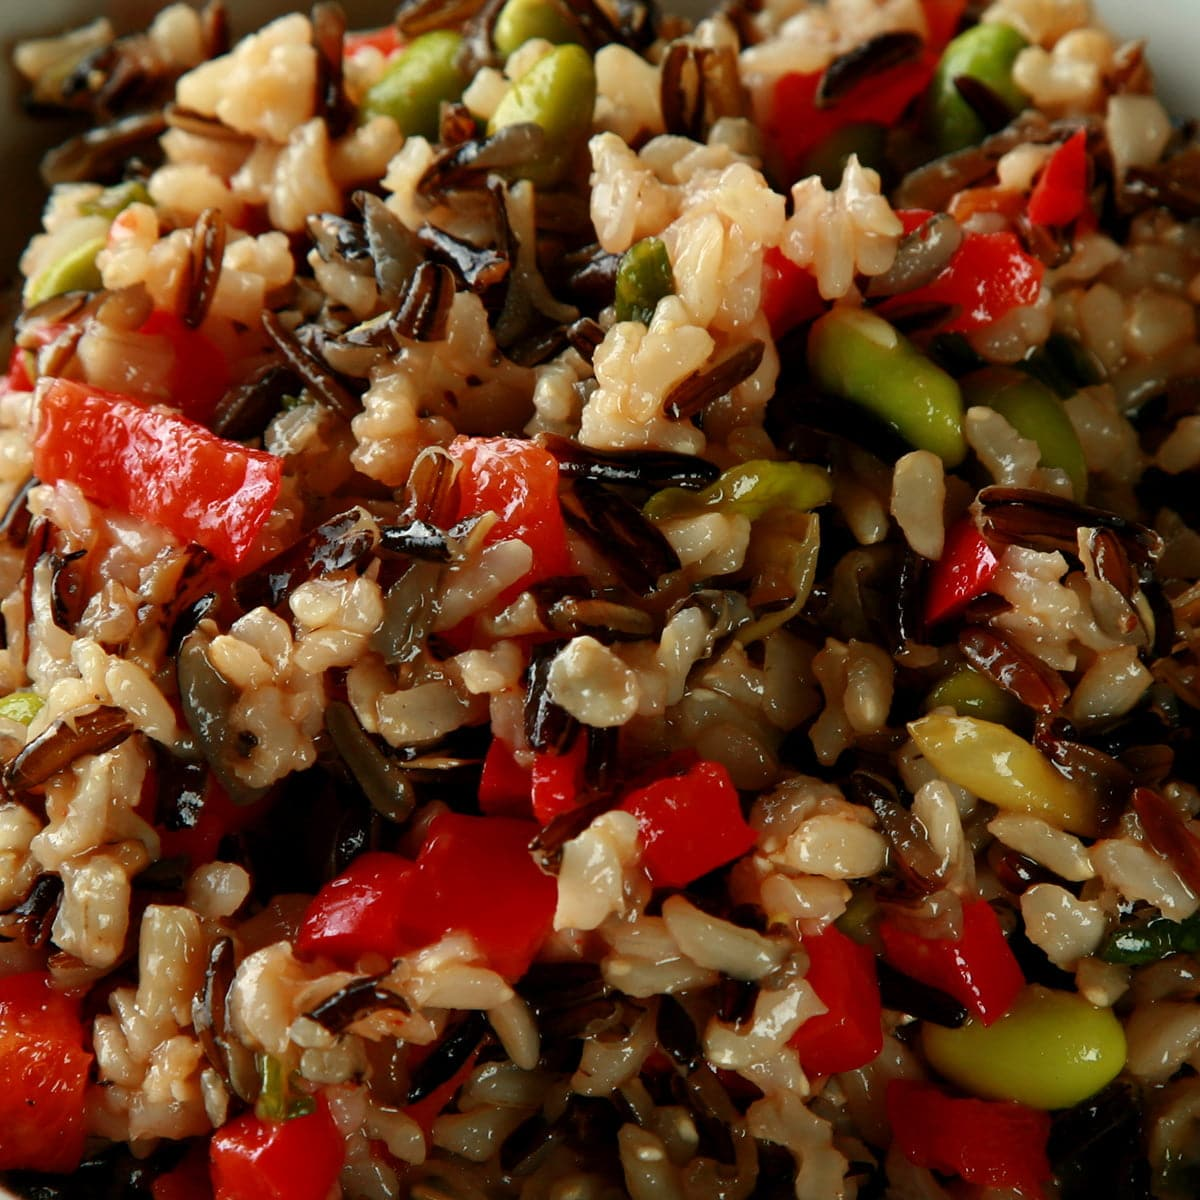 A bowl of wild rice and edamame salad. Wild rice, edamame, and red peppers are all visible.